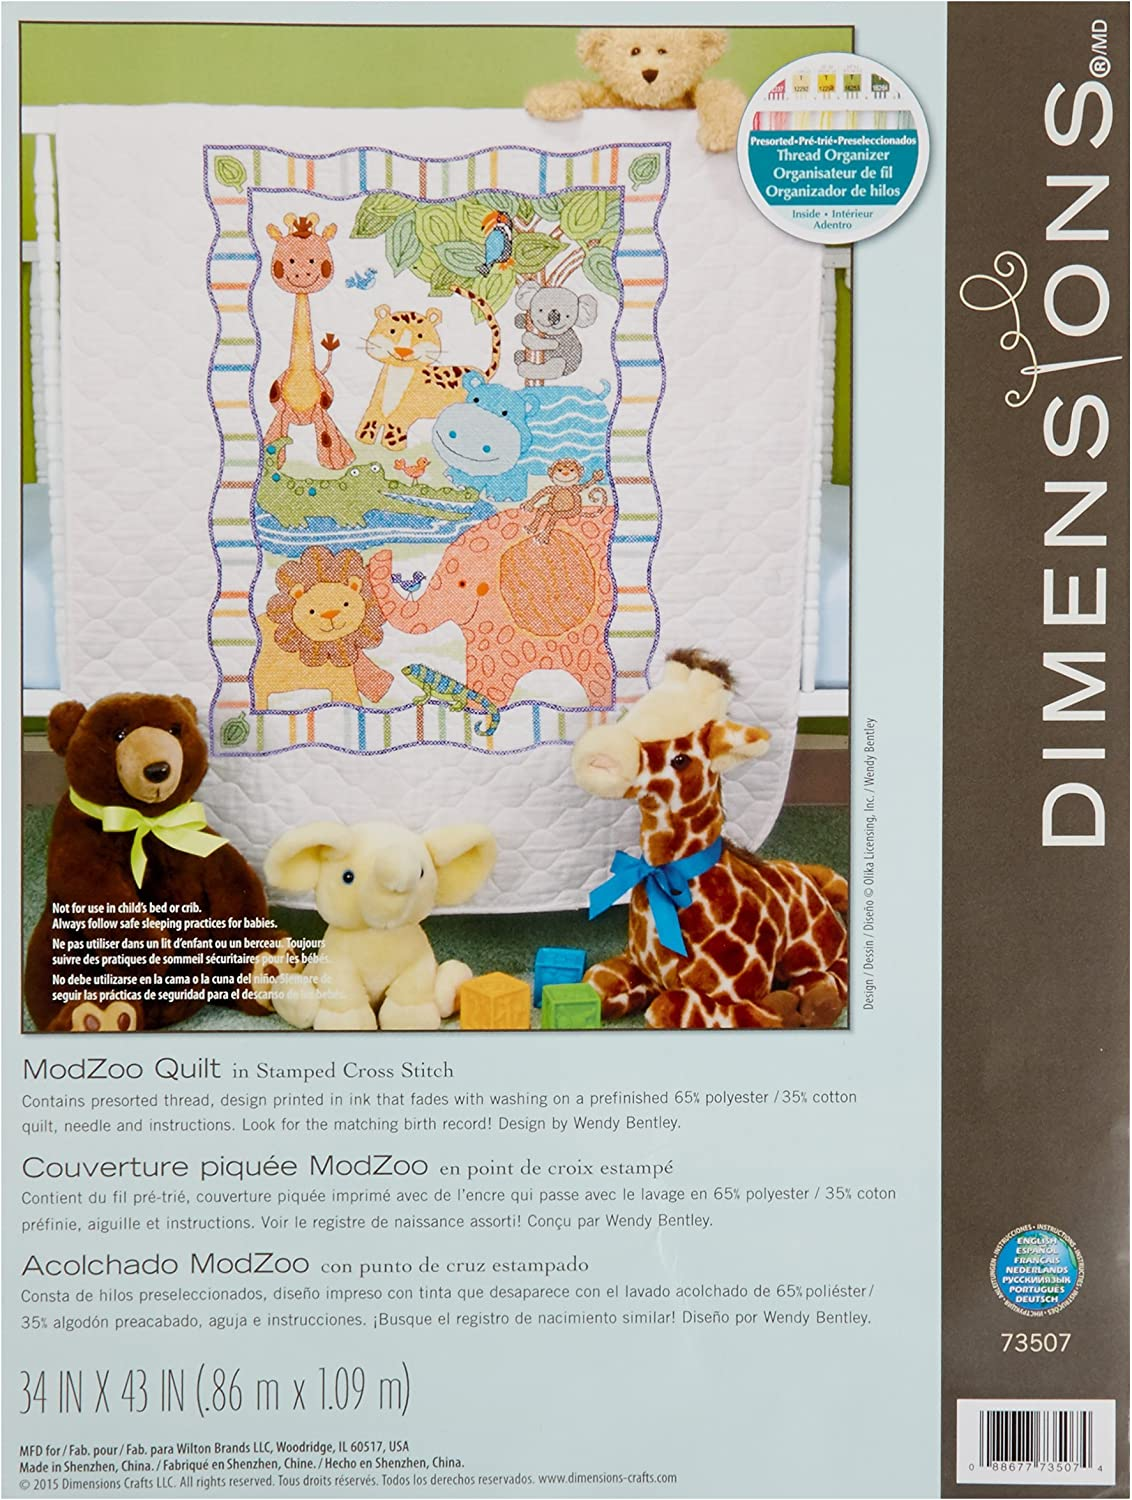 Dimensions Baby Hugs Quilt Stamped Cross Stitch Kit 90cm x 110cm